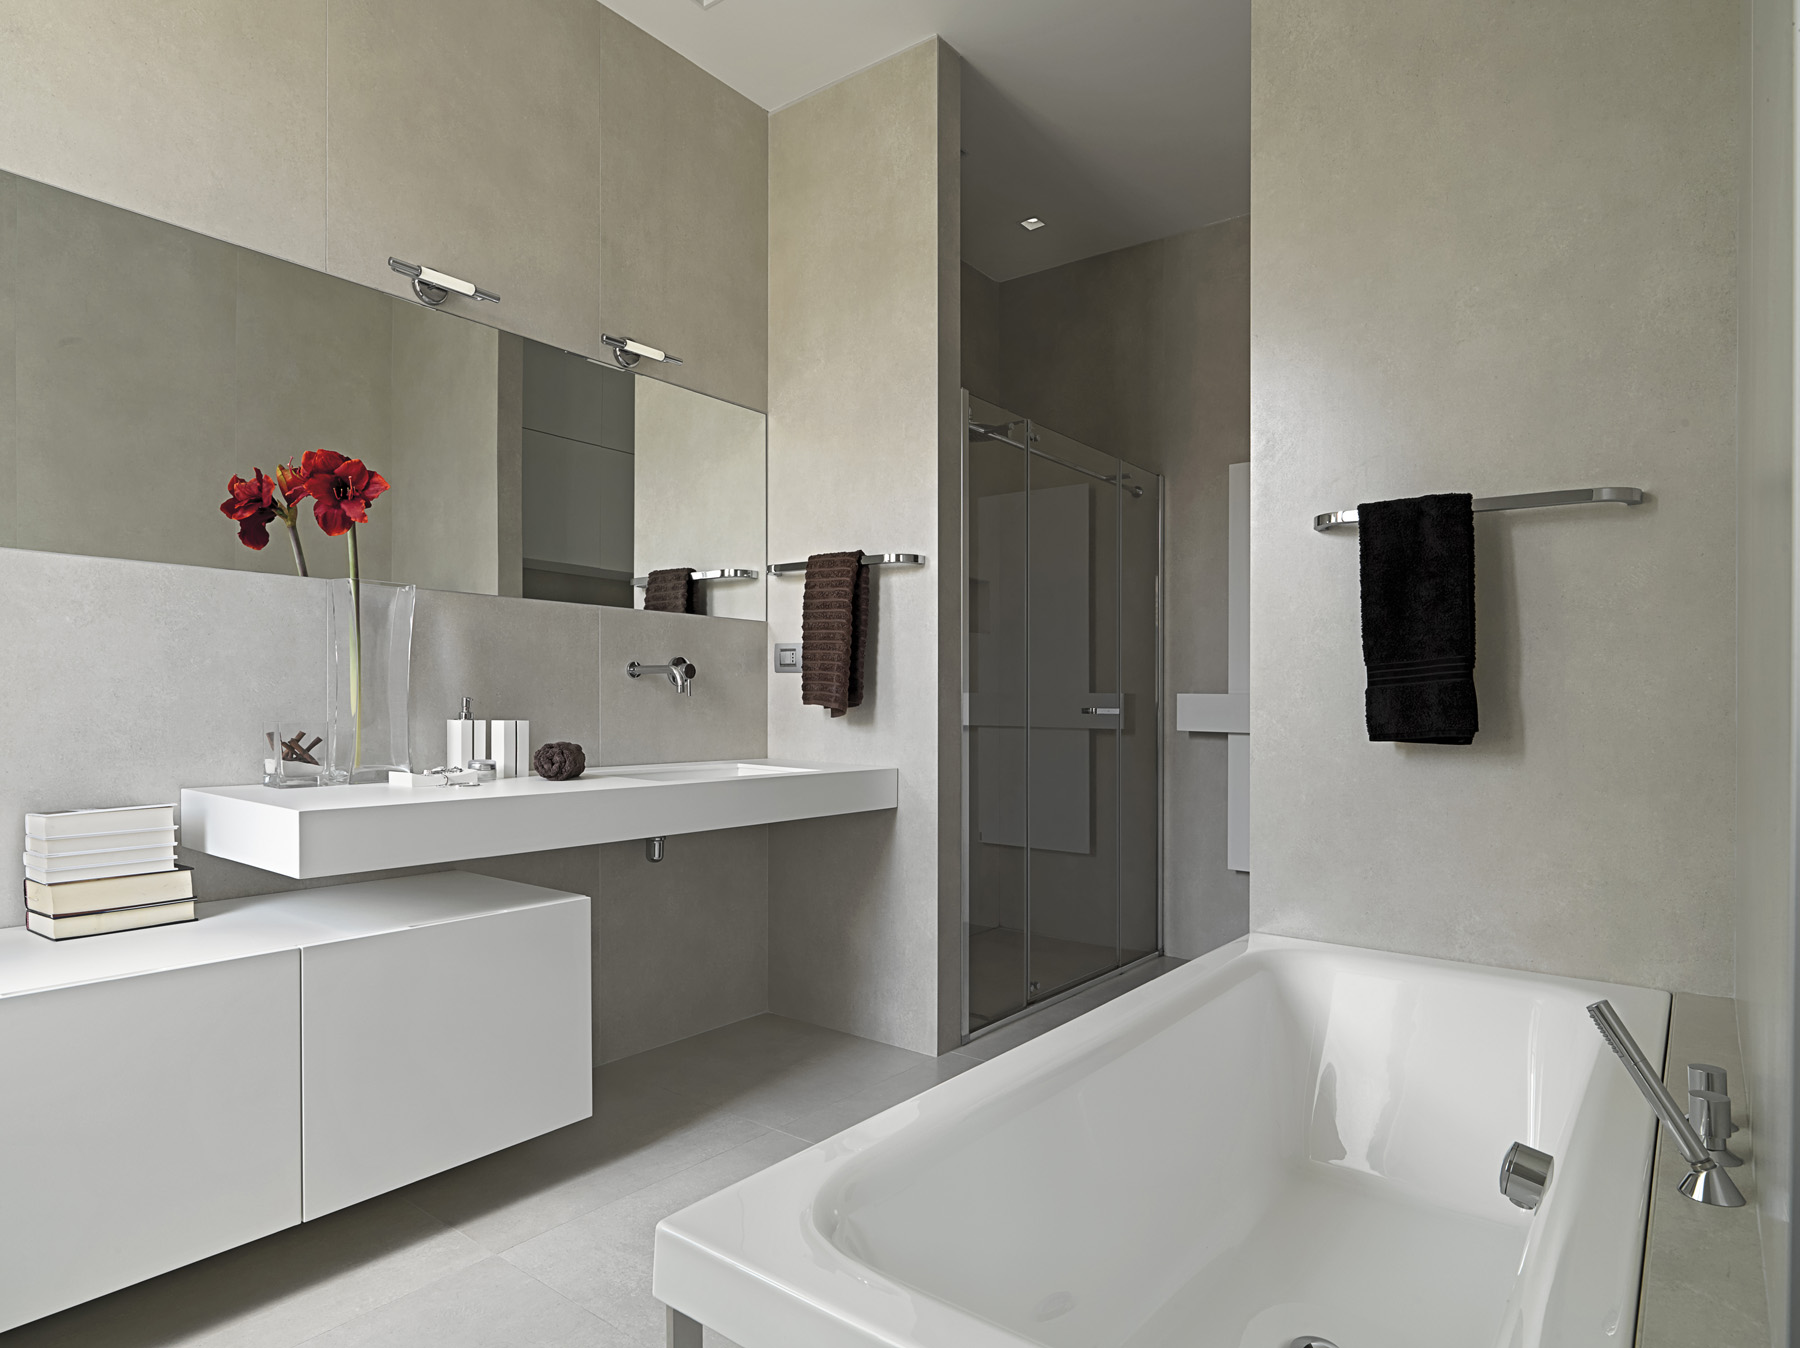 Bathroom bathtub and washbasin 51864